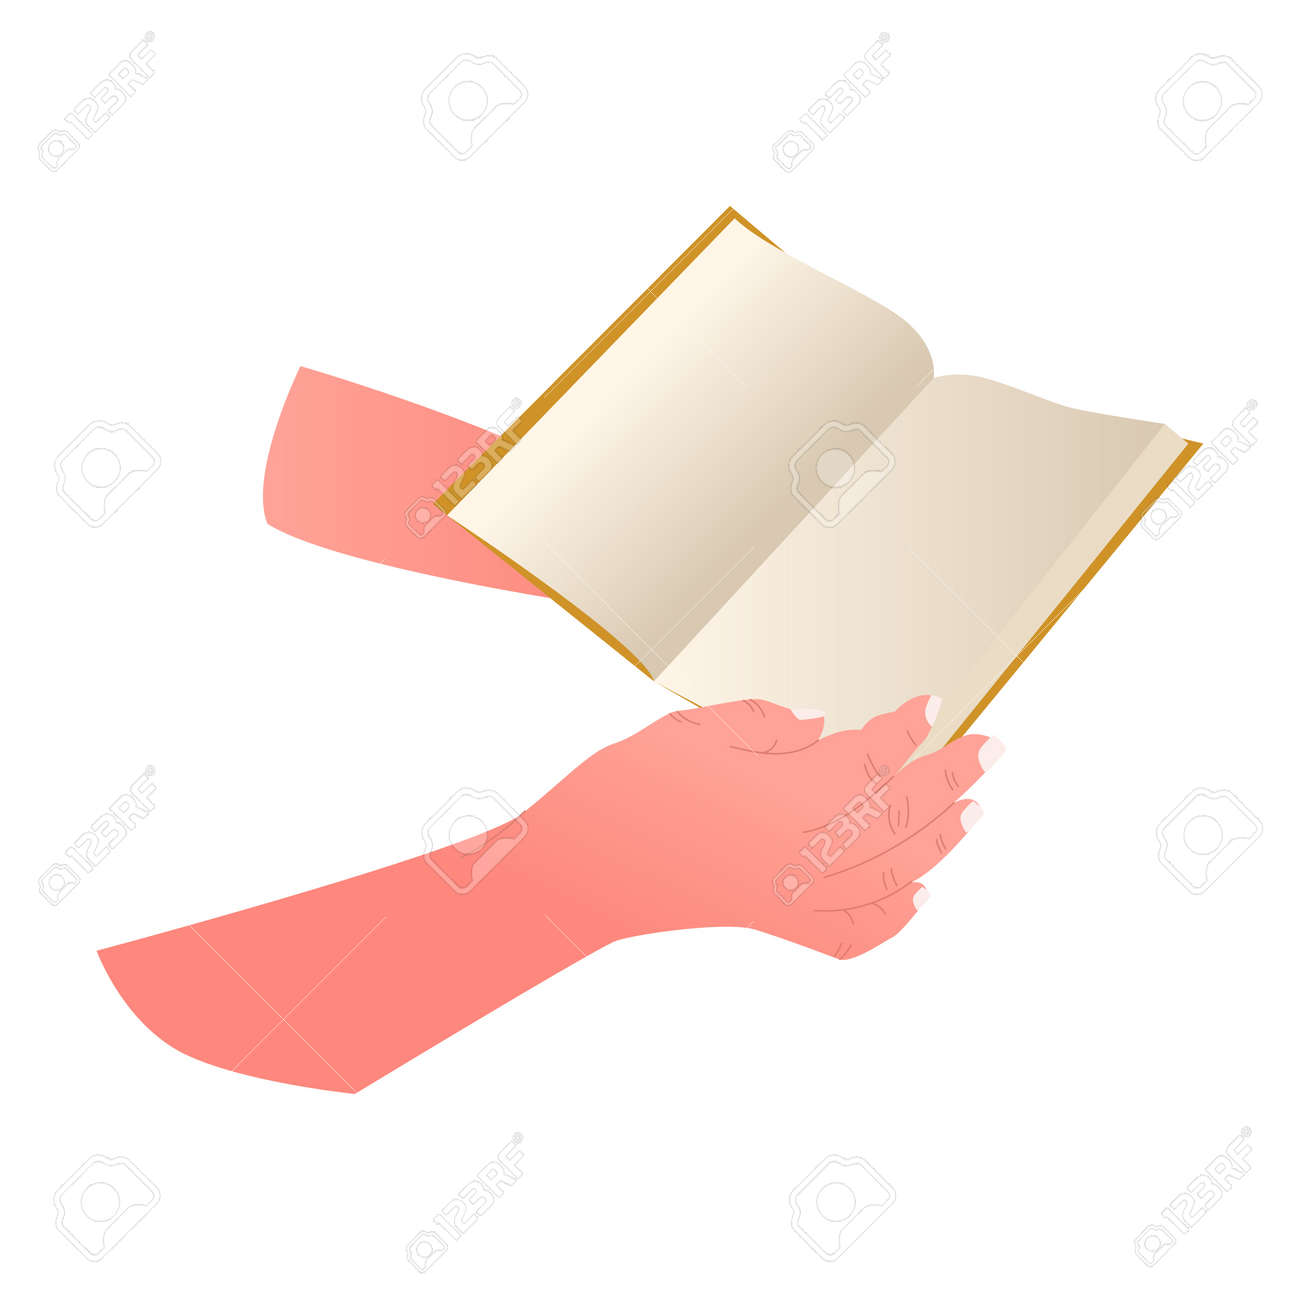 Hand with book isolated on white background. Open book in people hands, education concept. - 172236948